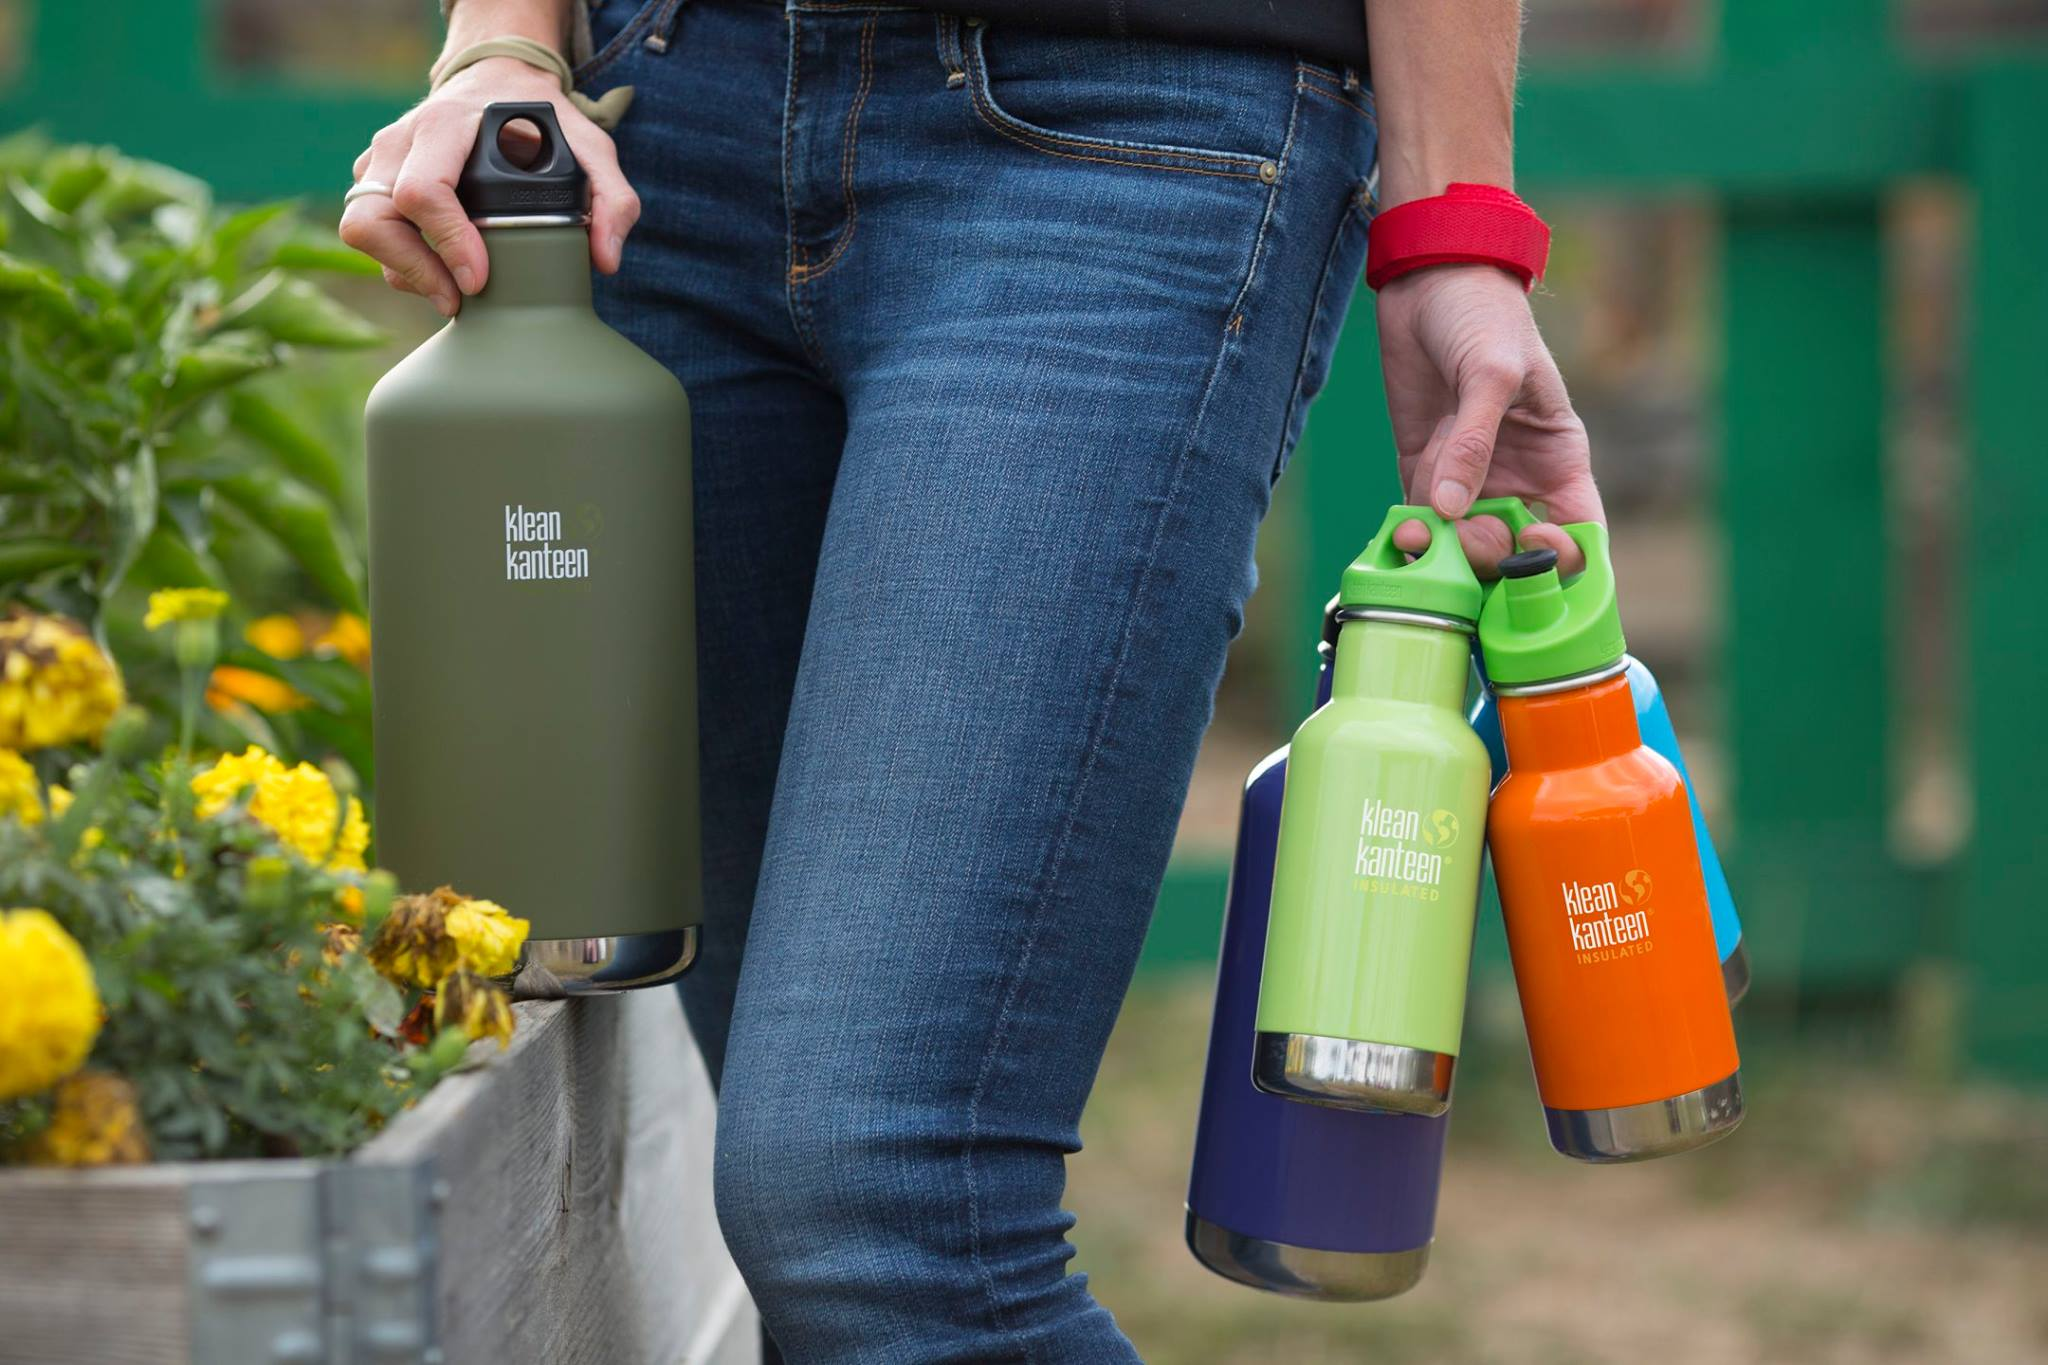 Klean Kanteen reduces plastic waste throughout the world